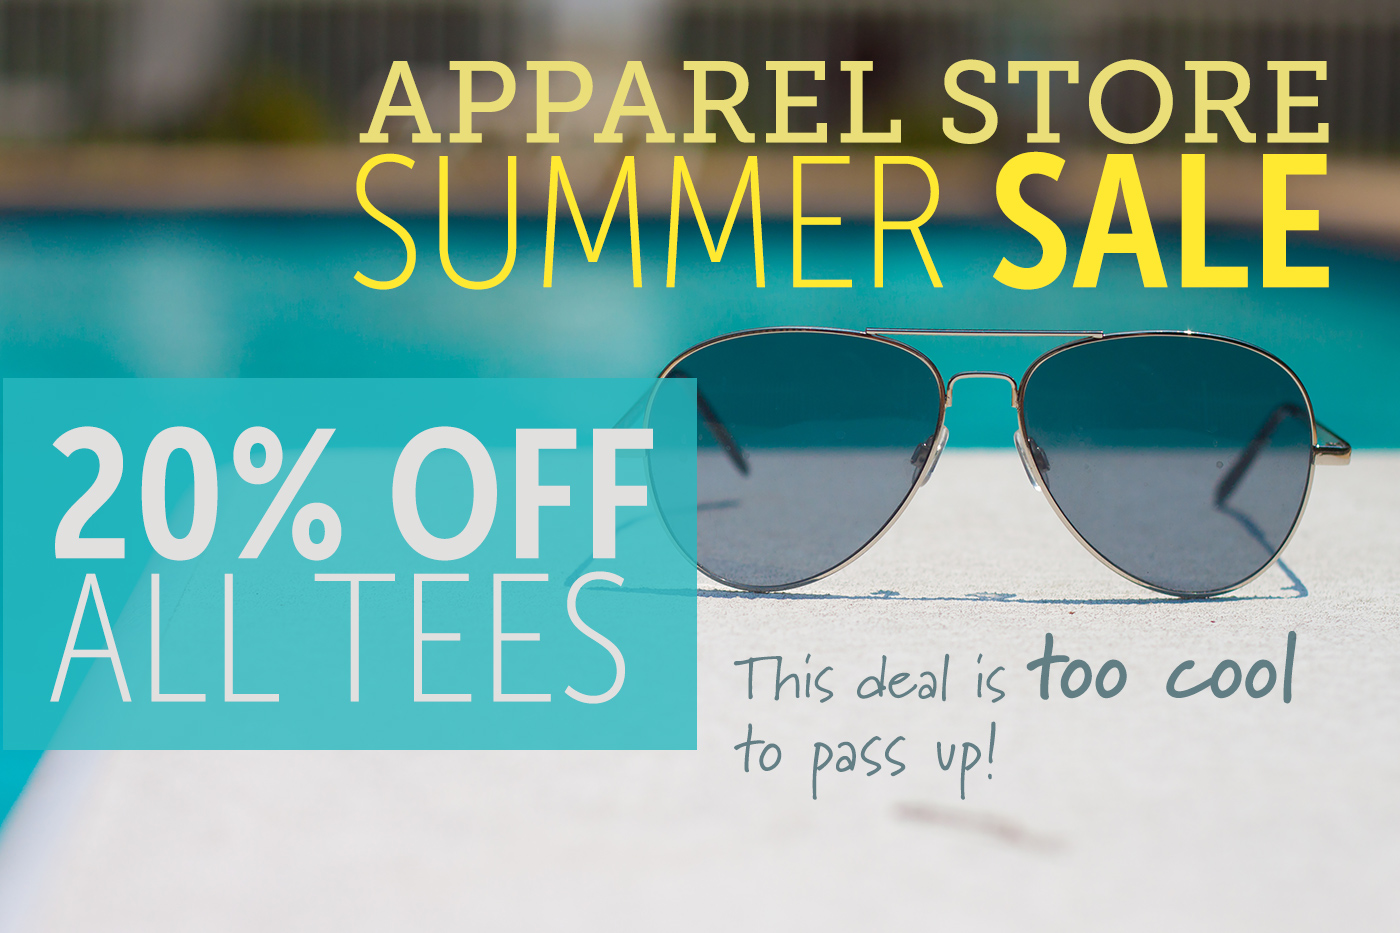 Apparel Store Summer Sale!